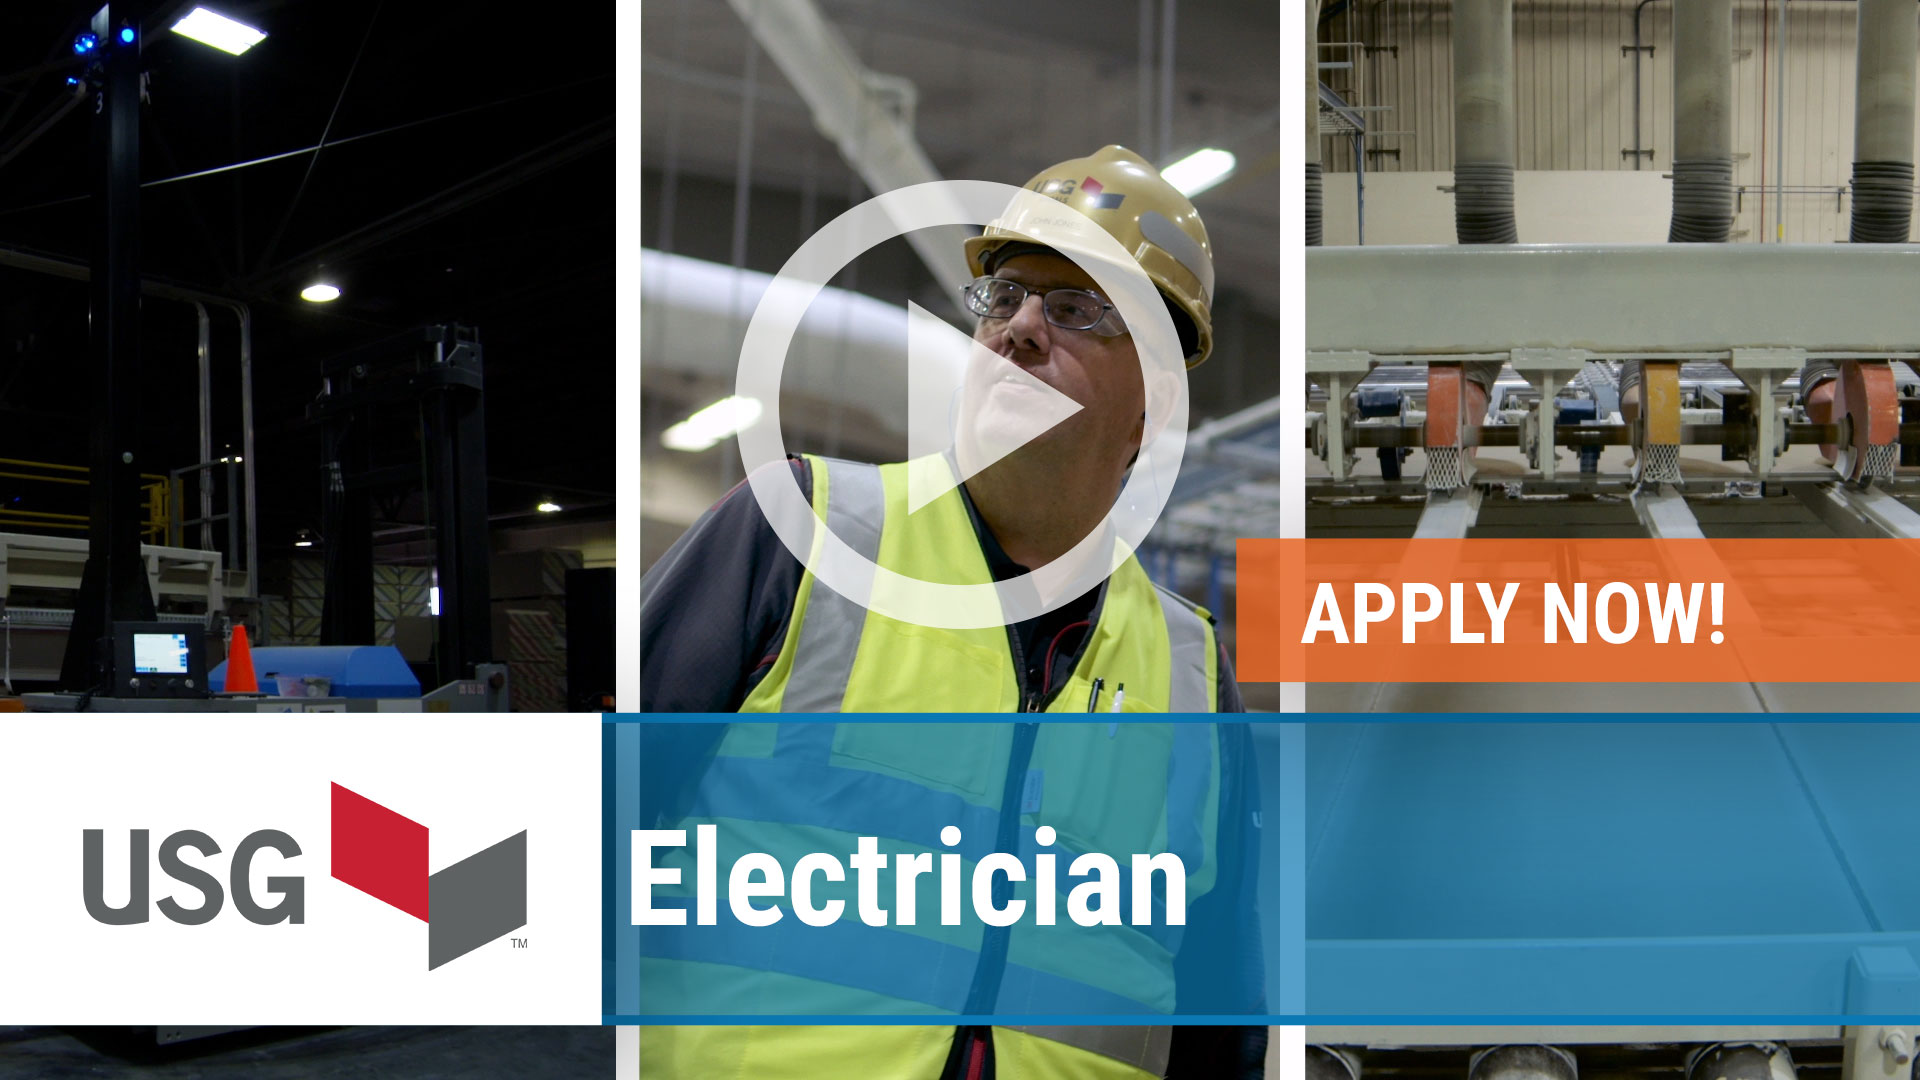 Watch our careers video for available job opening Electrician in East Chicago, Indiana, USA